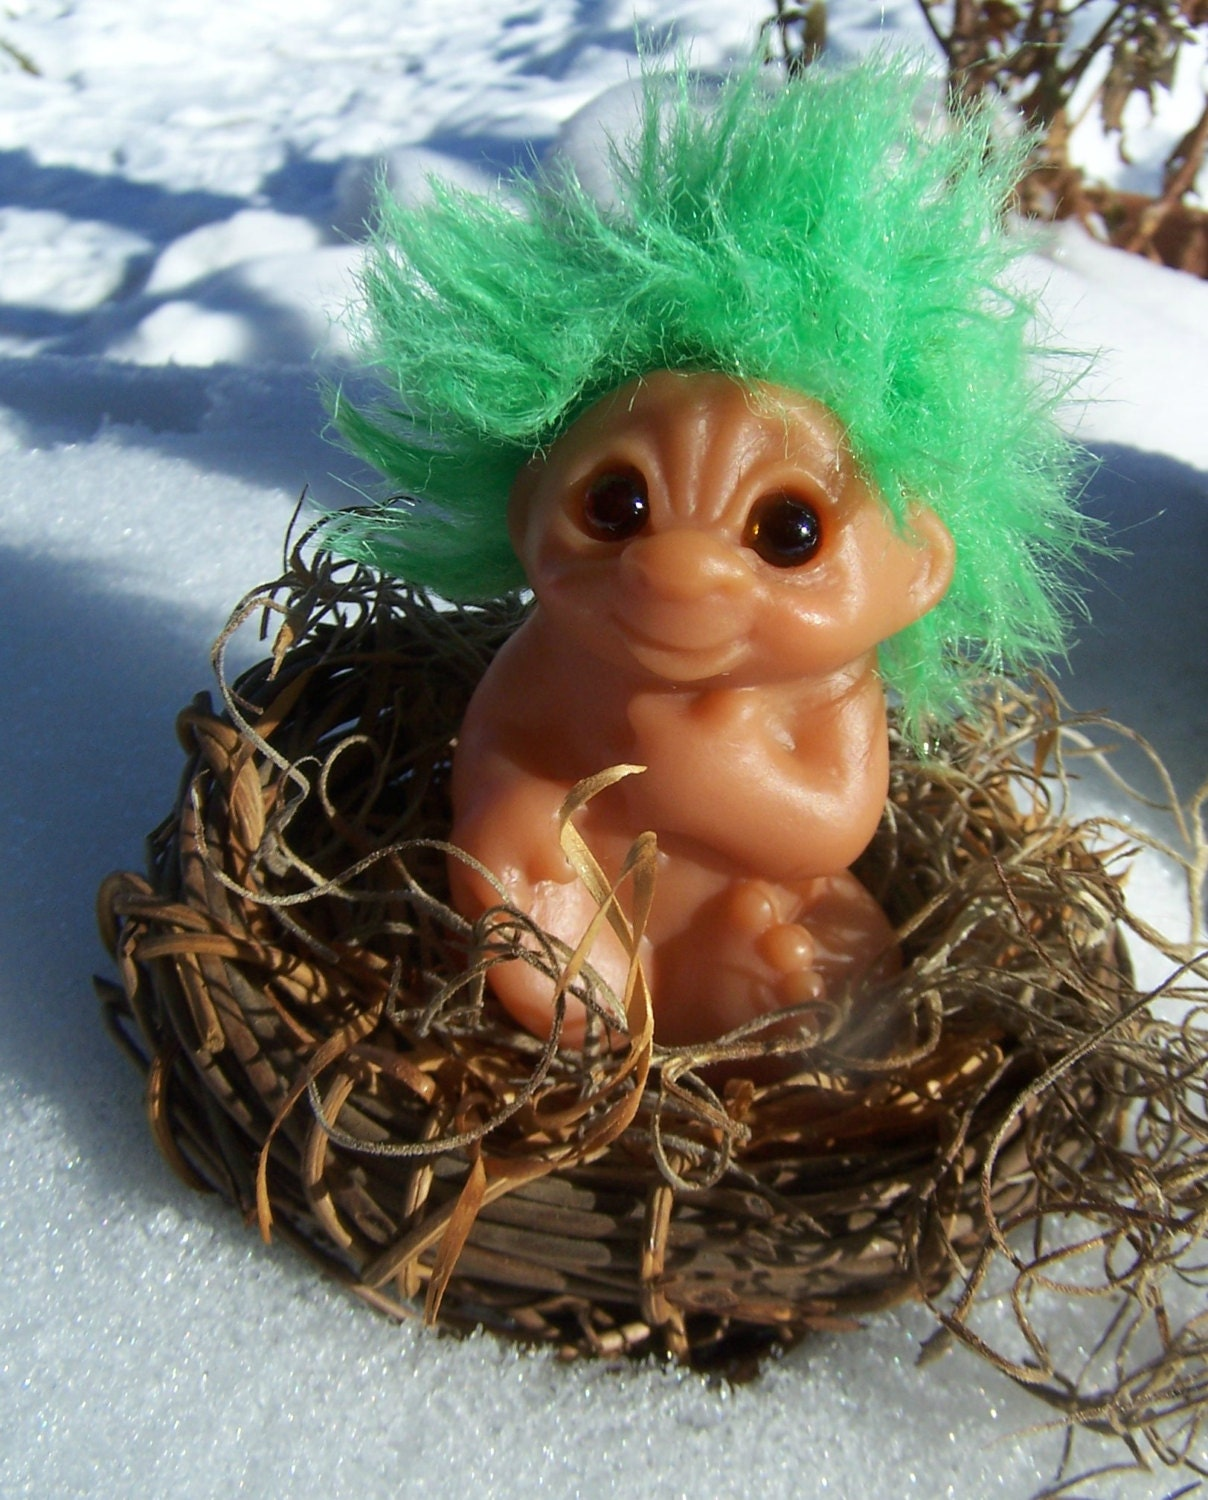 Vintage Toy Dam Troll Baby With Green Hair 1985 Sitting